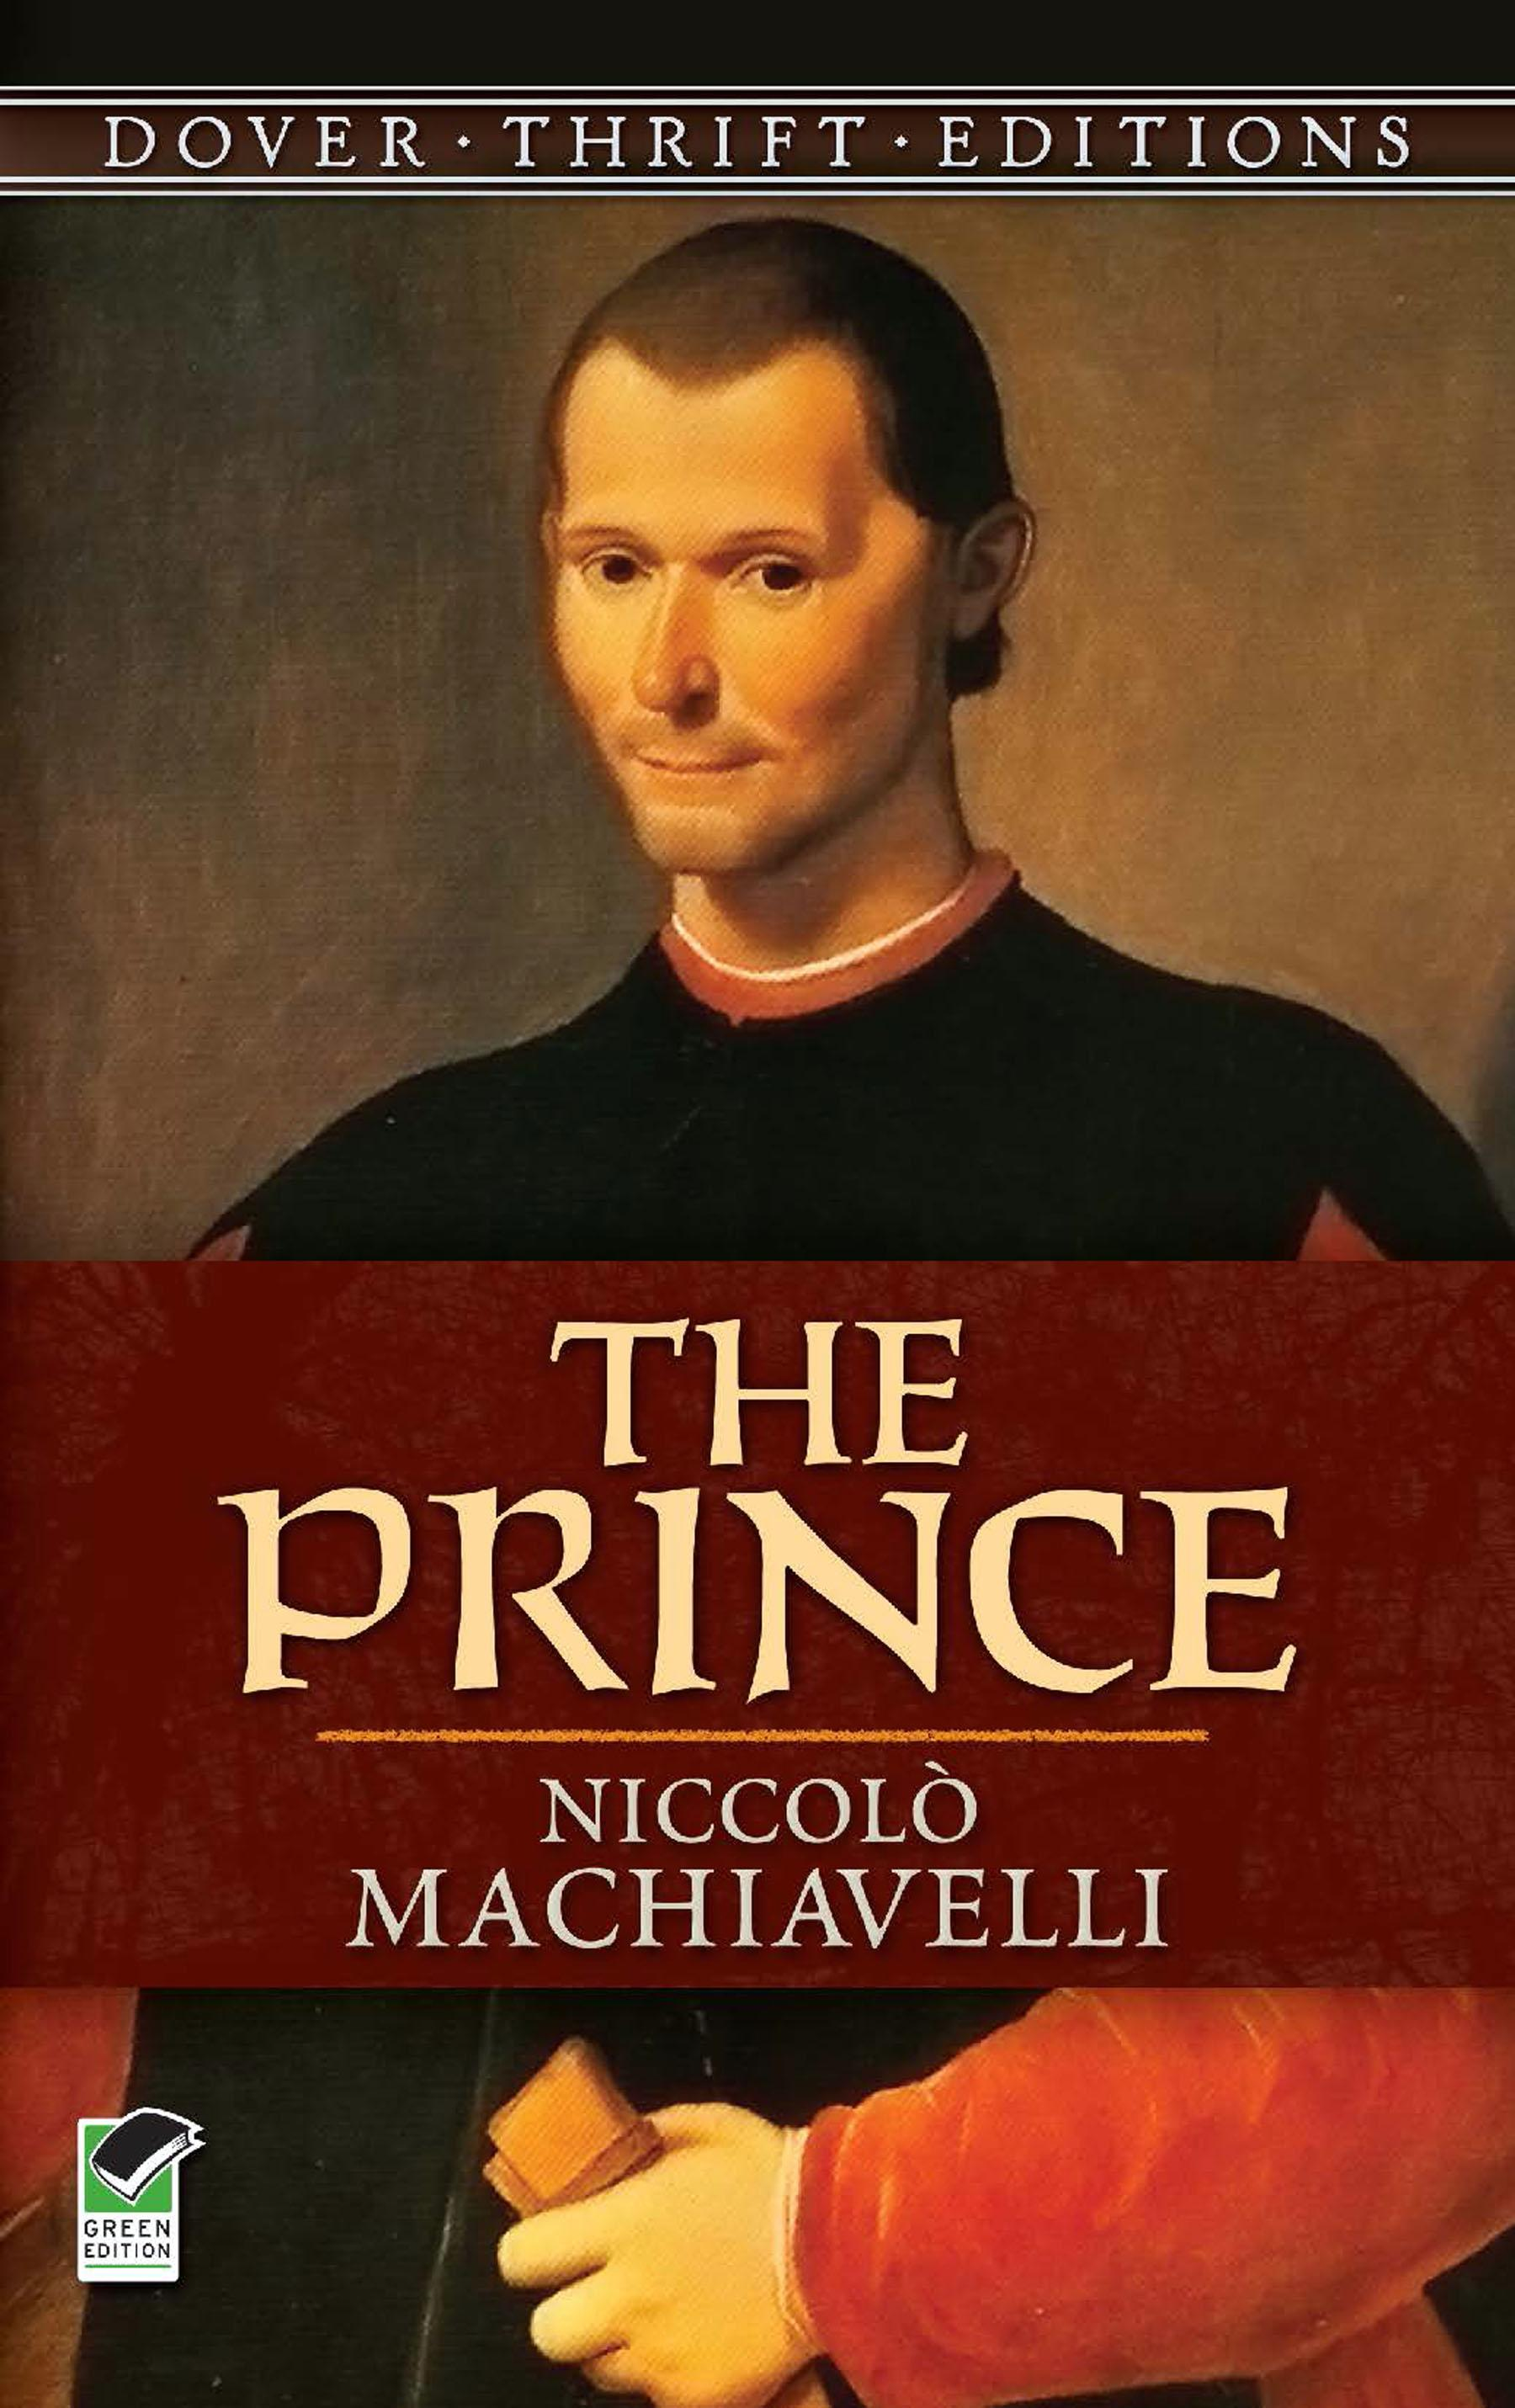 essays on niccolo machiavellis the prince Comparing niccolo machiavelli's the prince with thomas more's utopia in a five page comparative analysis it is determined that more's ideas are more conducive to producing good government and citizens than machiavelli's concepts are with quotes supplied from each respective works.